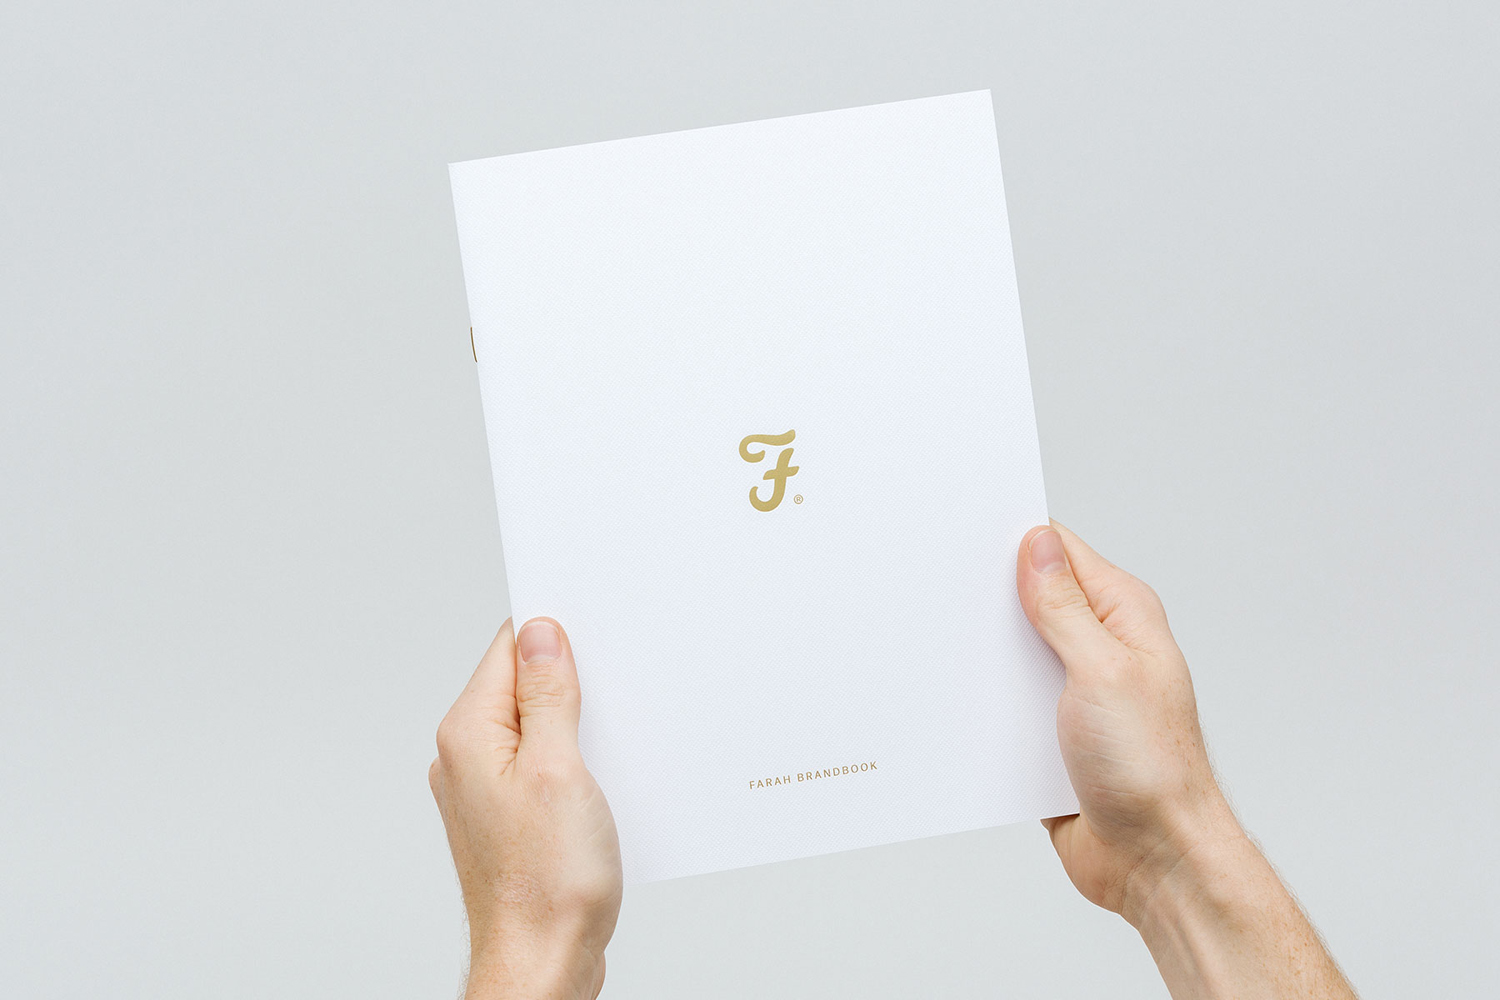 Brand identity and brand book for British men's fashion label Farah by graphic design studio Post